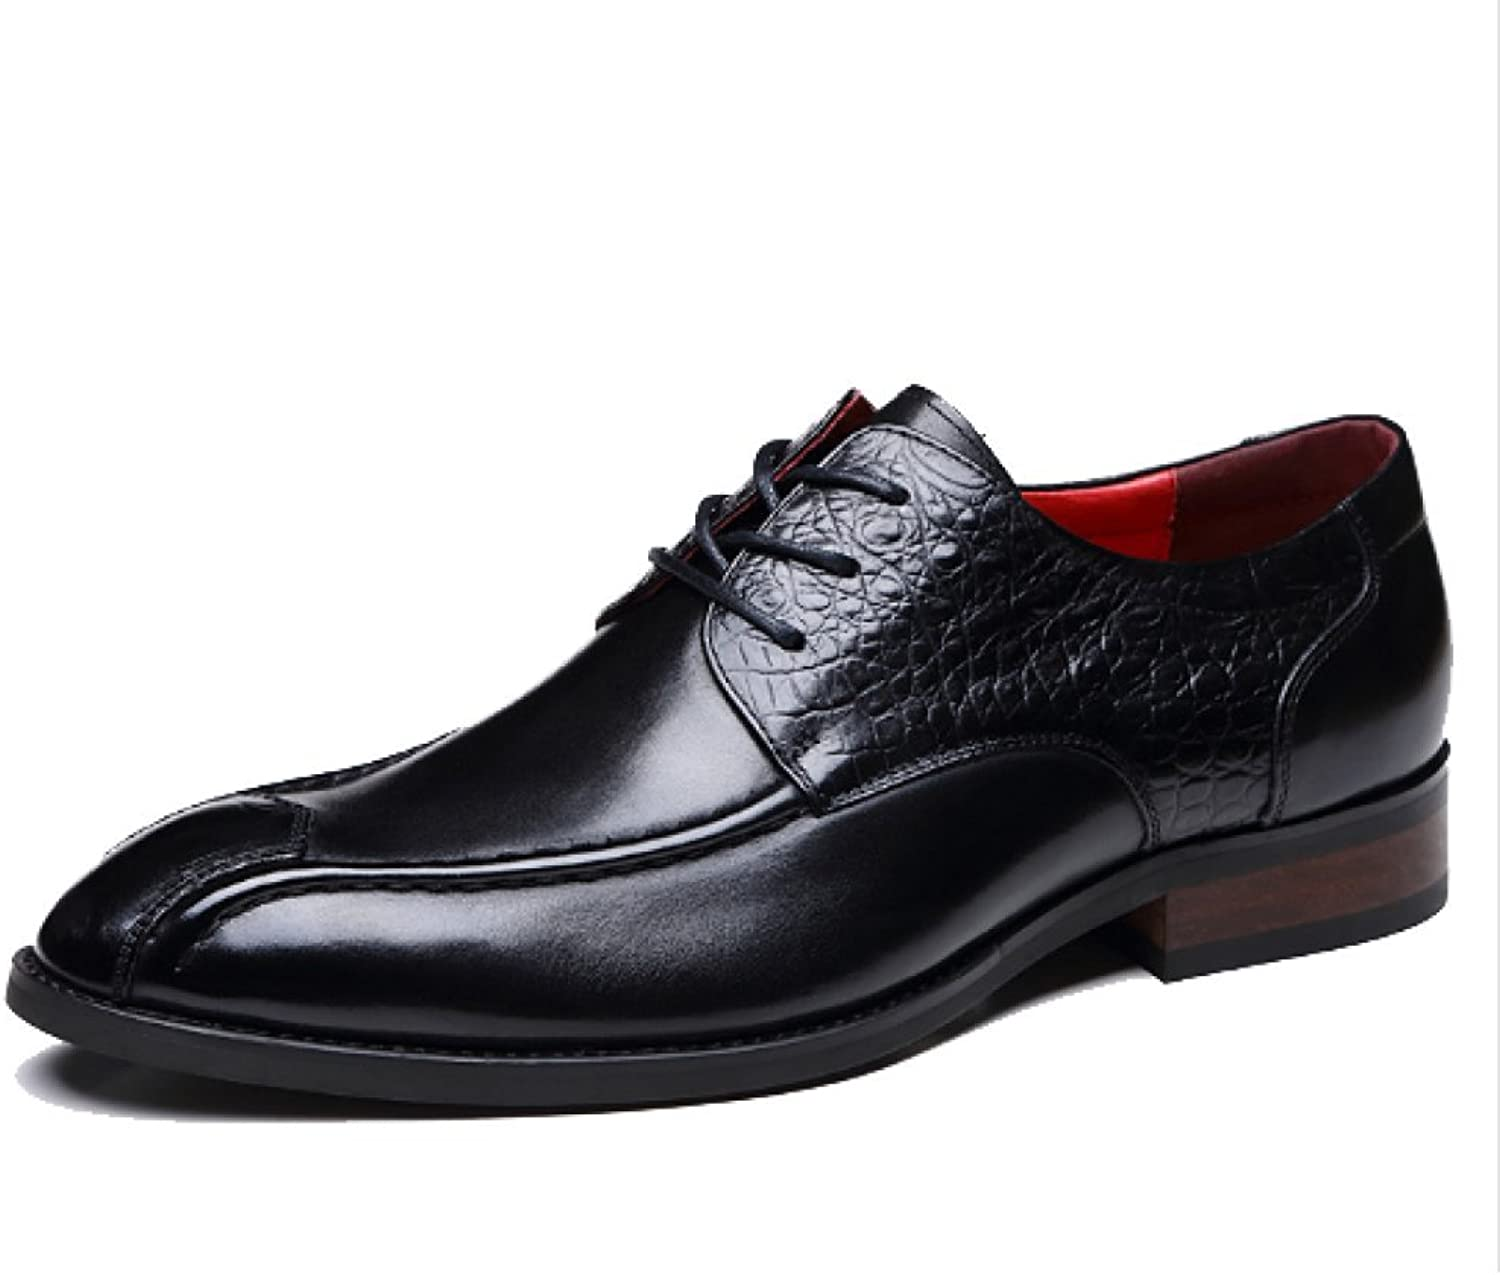 Men's Leather shoes Autumn High-end Handmade shoes Pointed Business Formal Fashion Trend